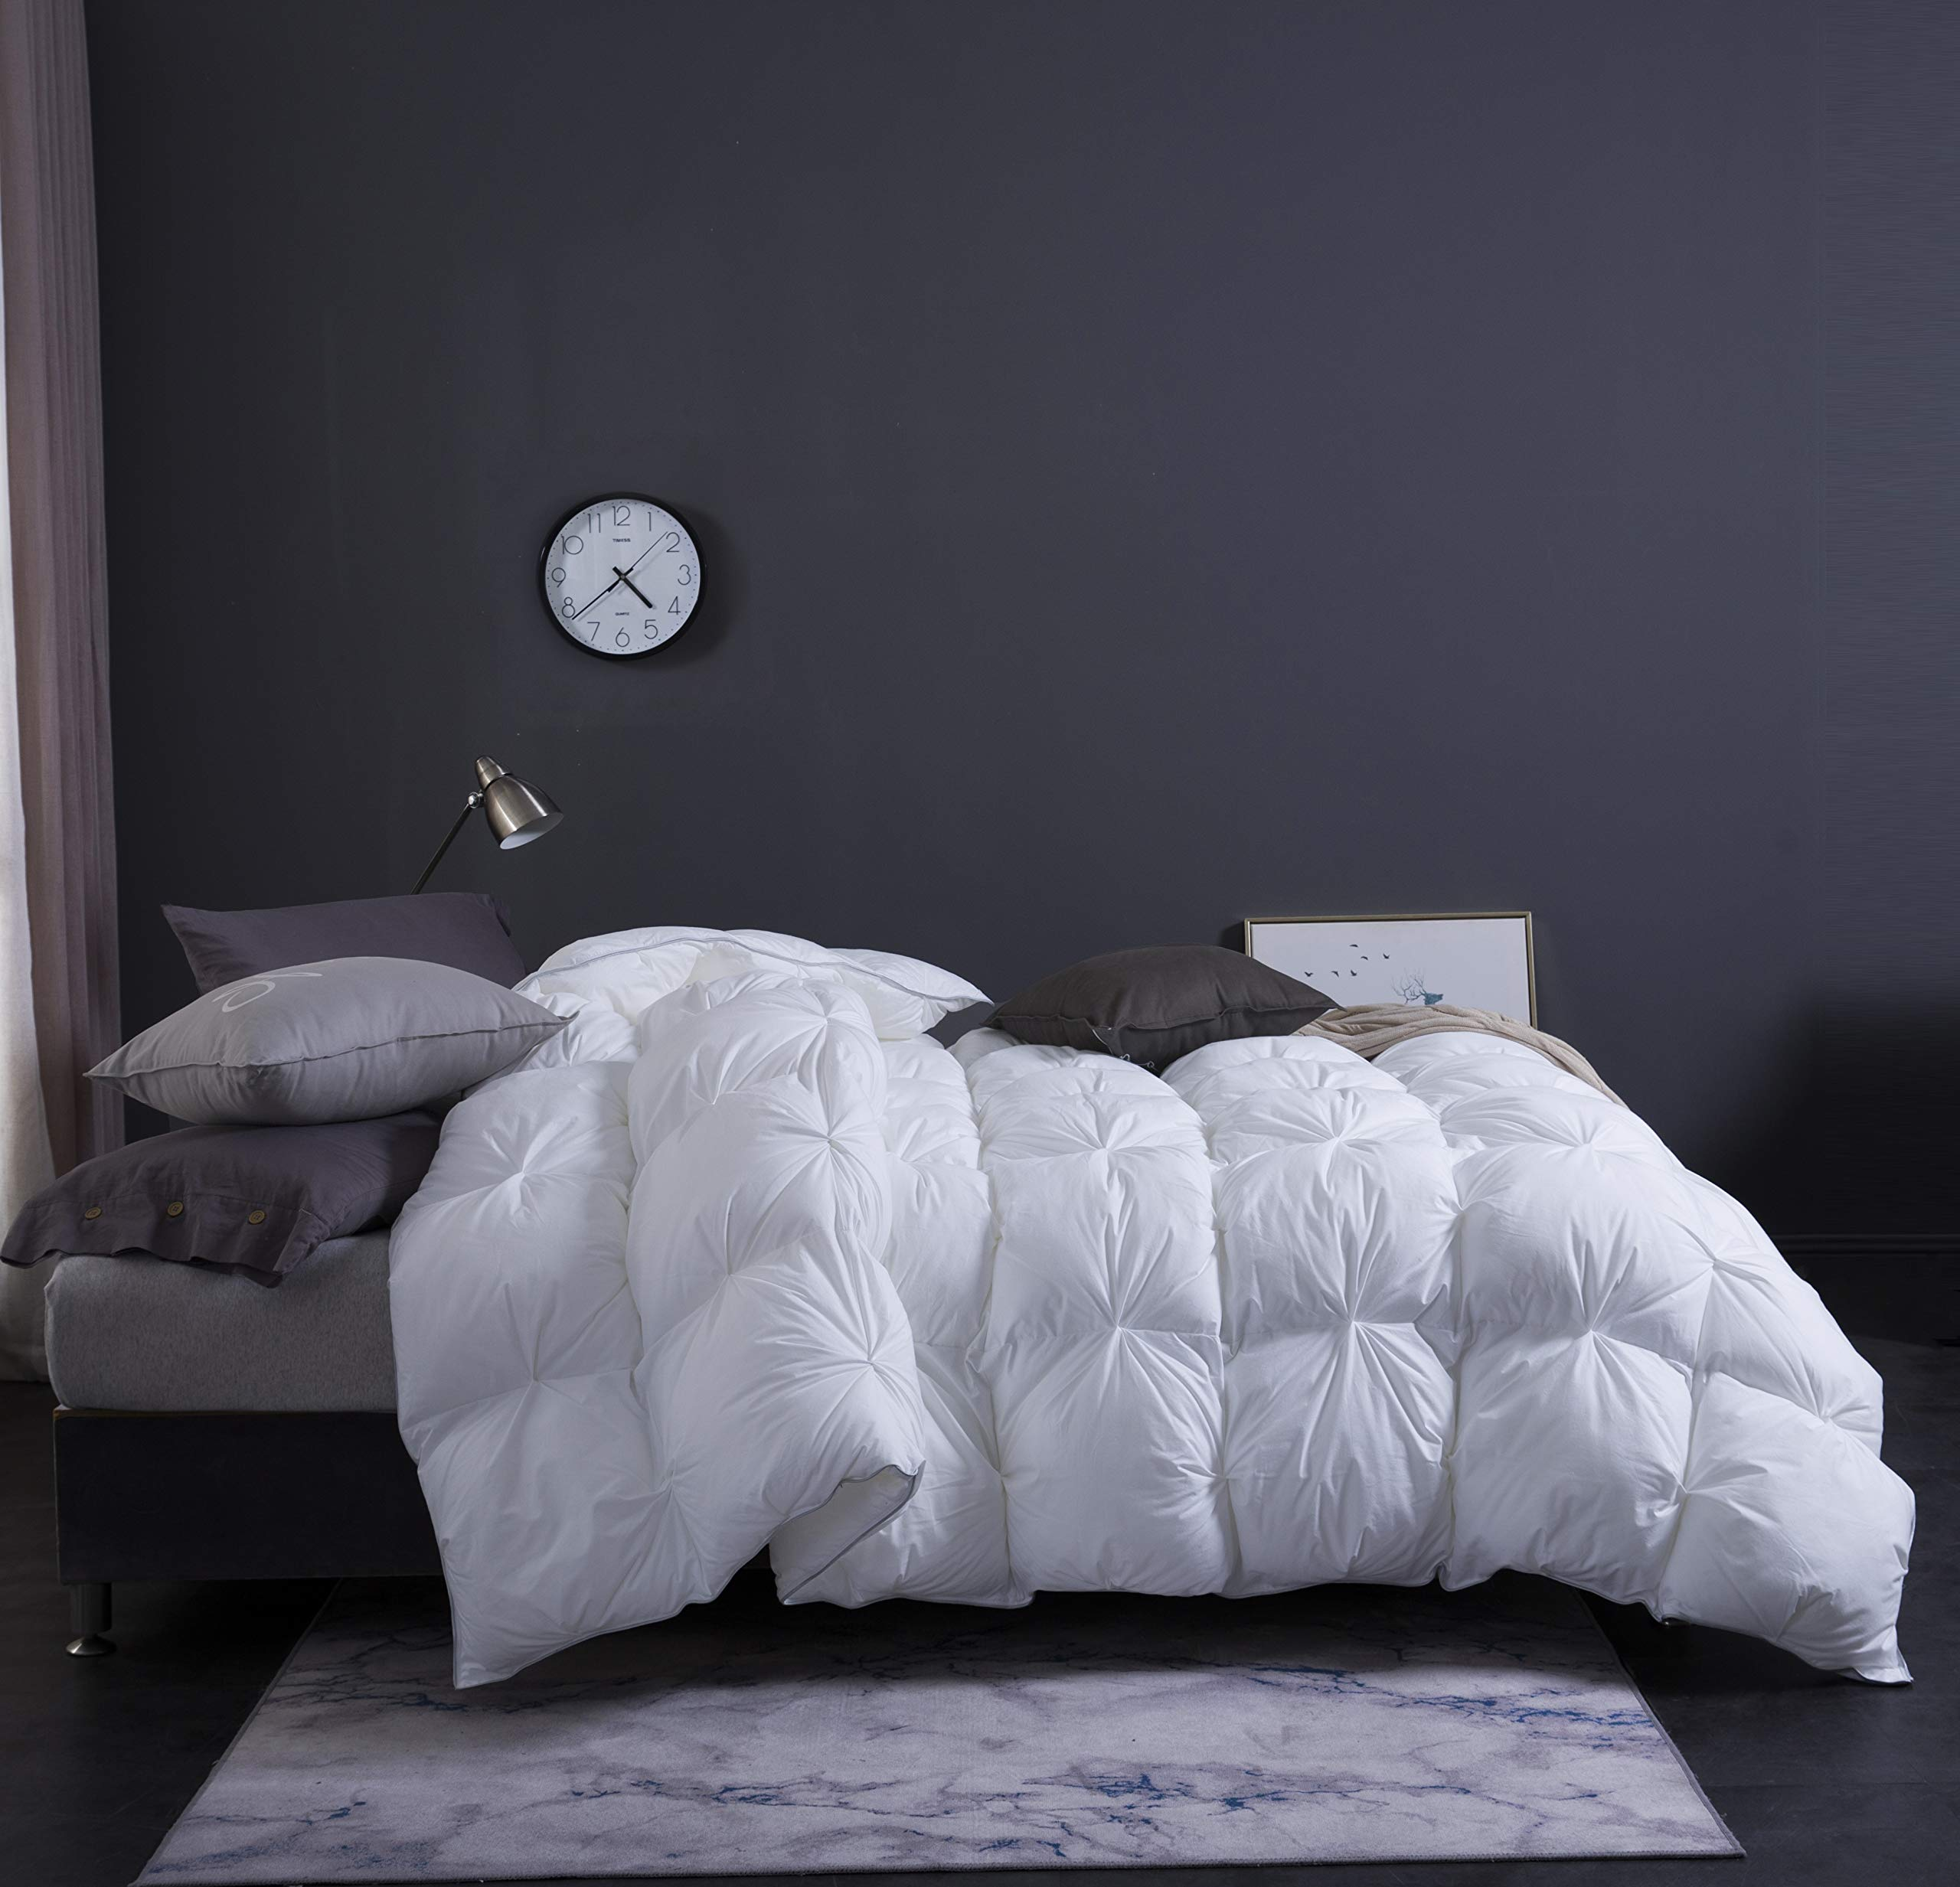 WENERSI White Goose Down Comforter,Beautiful Twisted Flower,1000Thread Count 100% Egyptian Cotton Fabric,All Season King Comforter